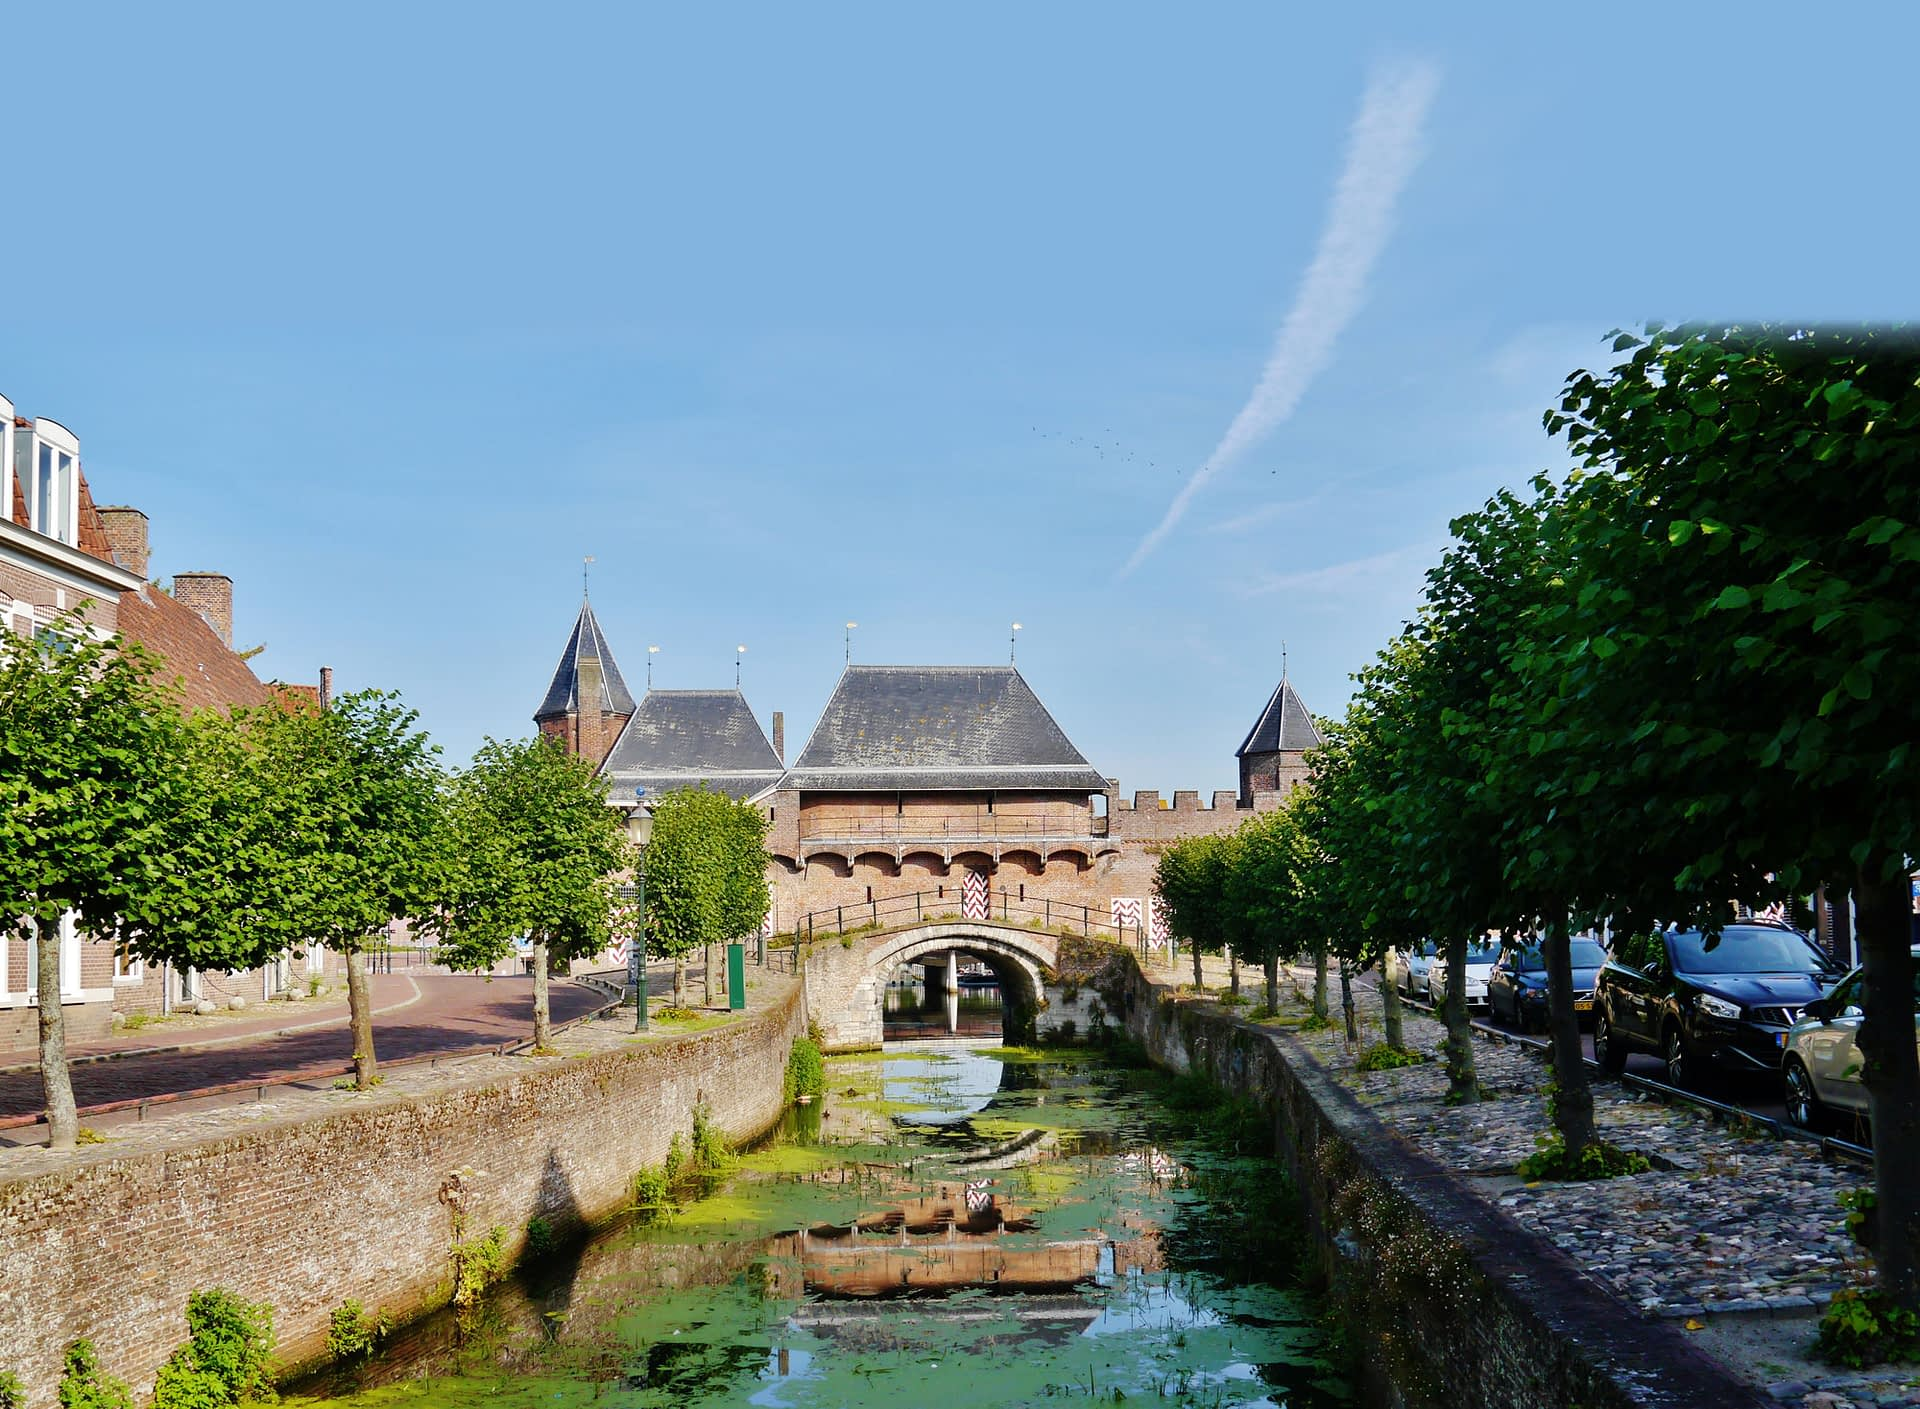 The municipality of Amersfoort aims to be completely waste-free by 2050.